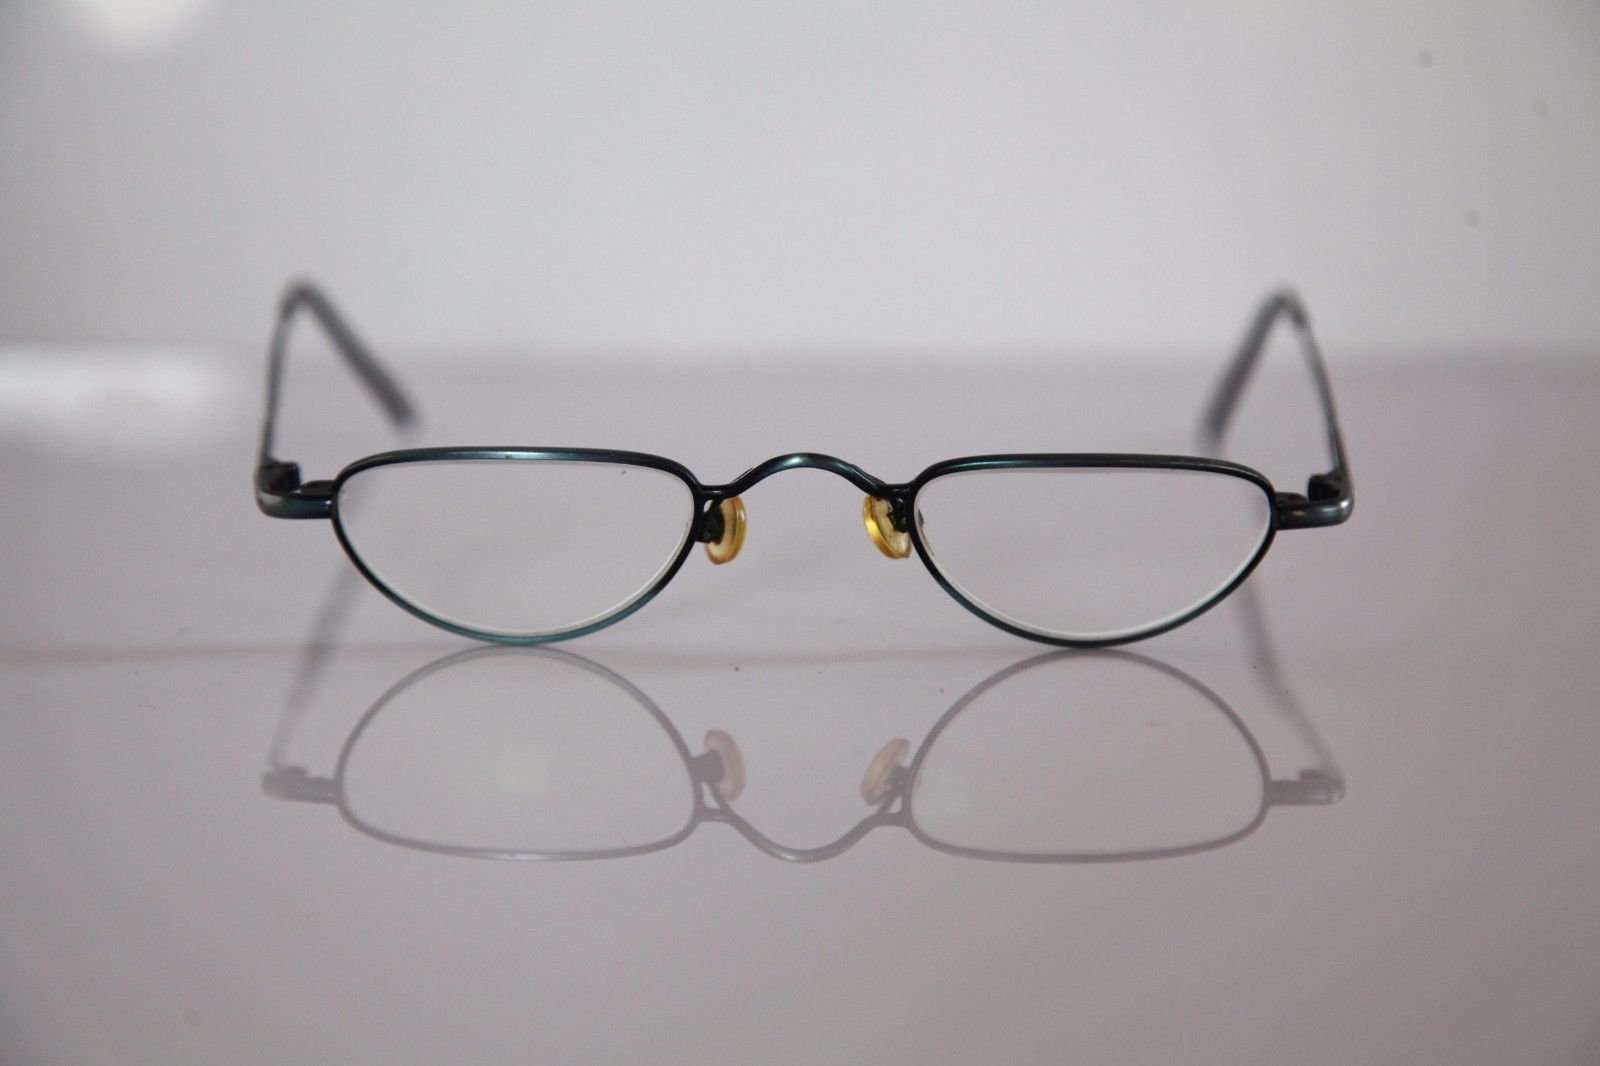 Eyewear, Metallic Blue Frame,  RX-Able Prescription Lenses.